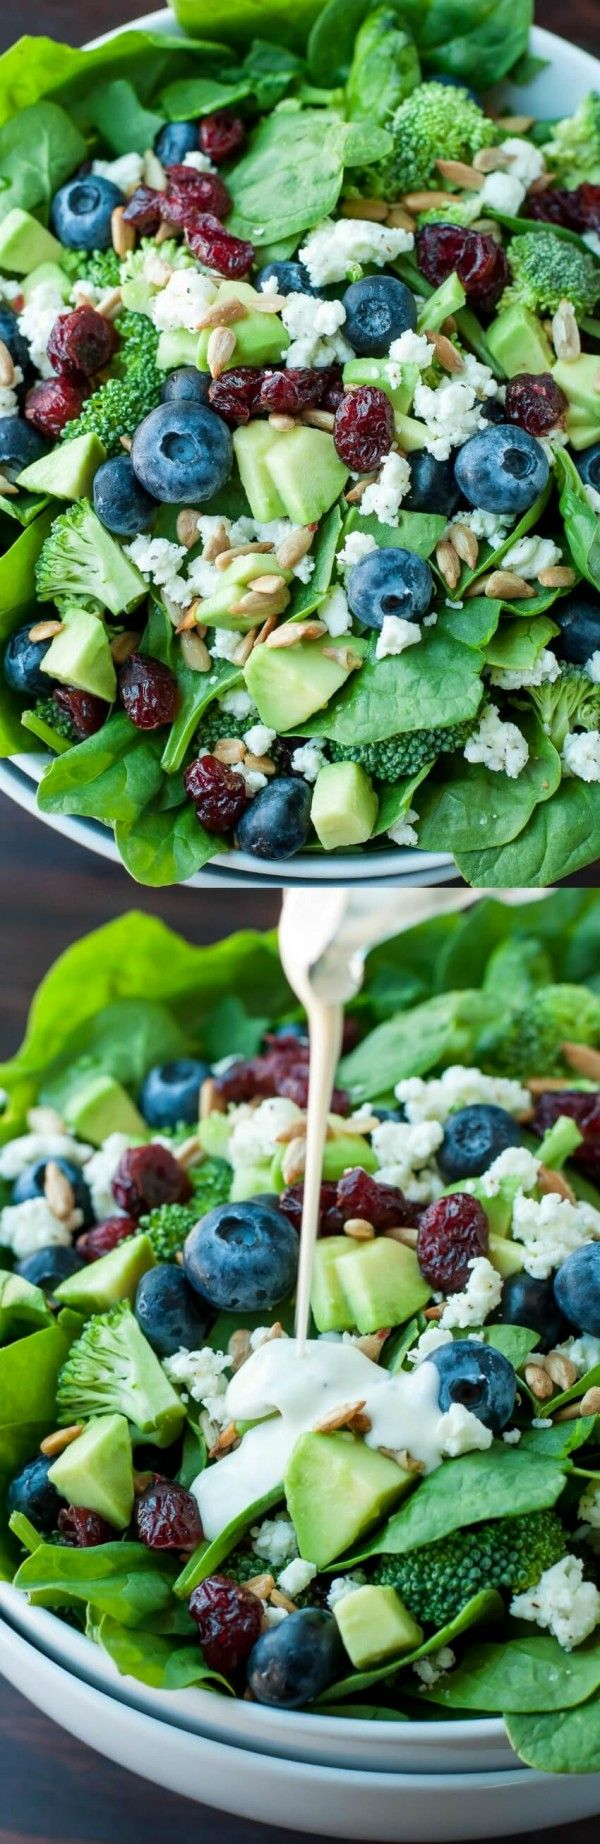 Get the recipe ♥ Blueberry Broccoli Spinach Salad @recipes_to_go #besttoeat